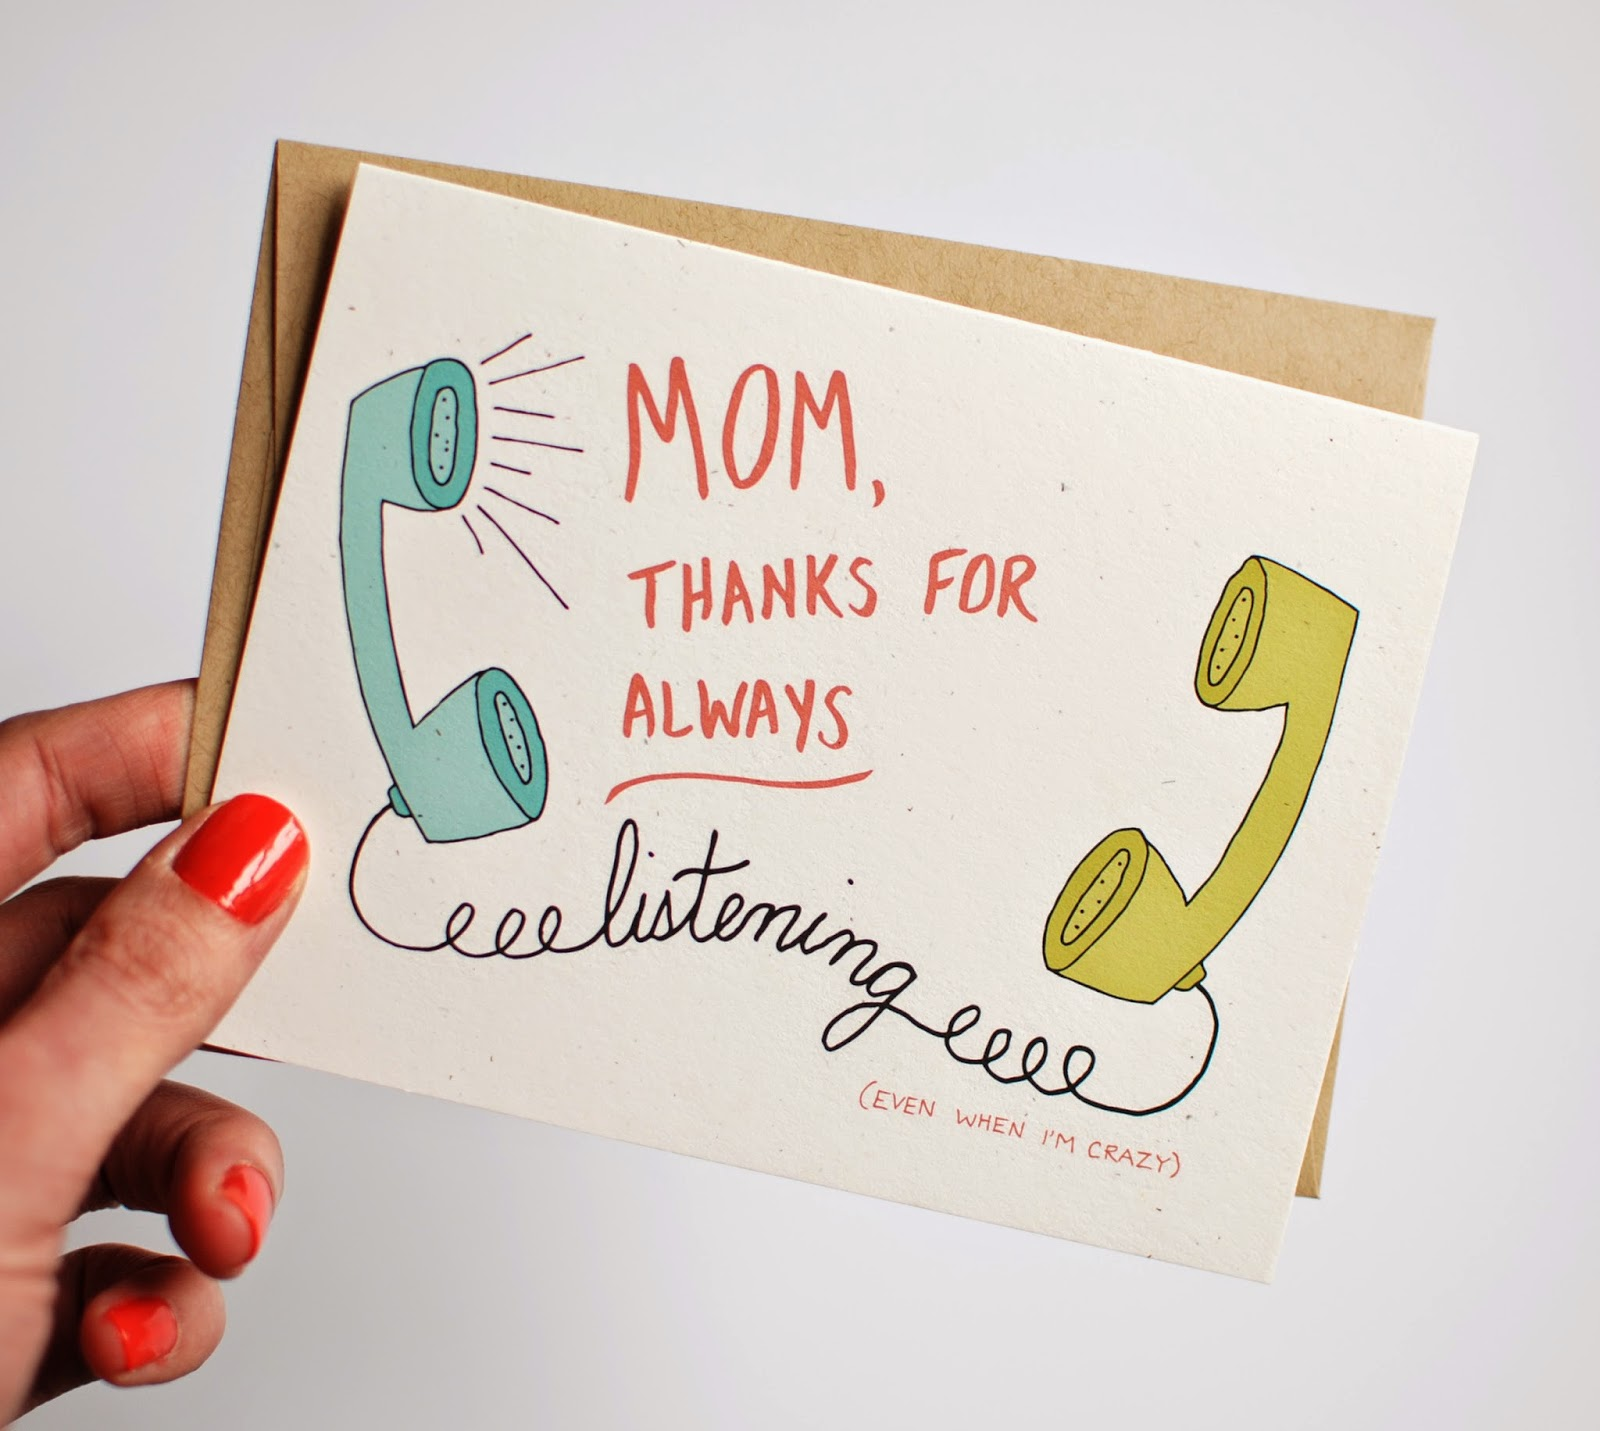 https://www.etsy.com/listing/183007367/mothers-day-card-funny-mothers-day-card?ref=related-5